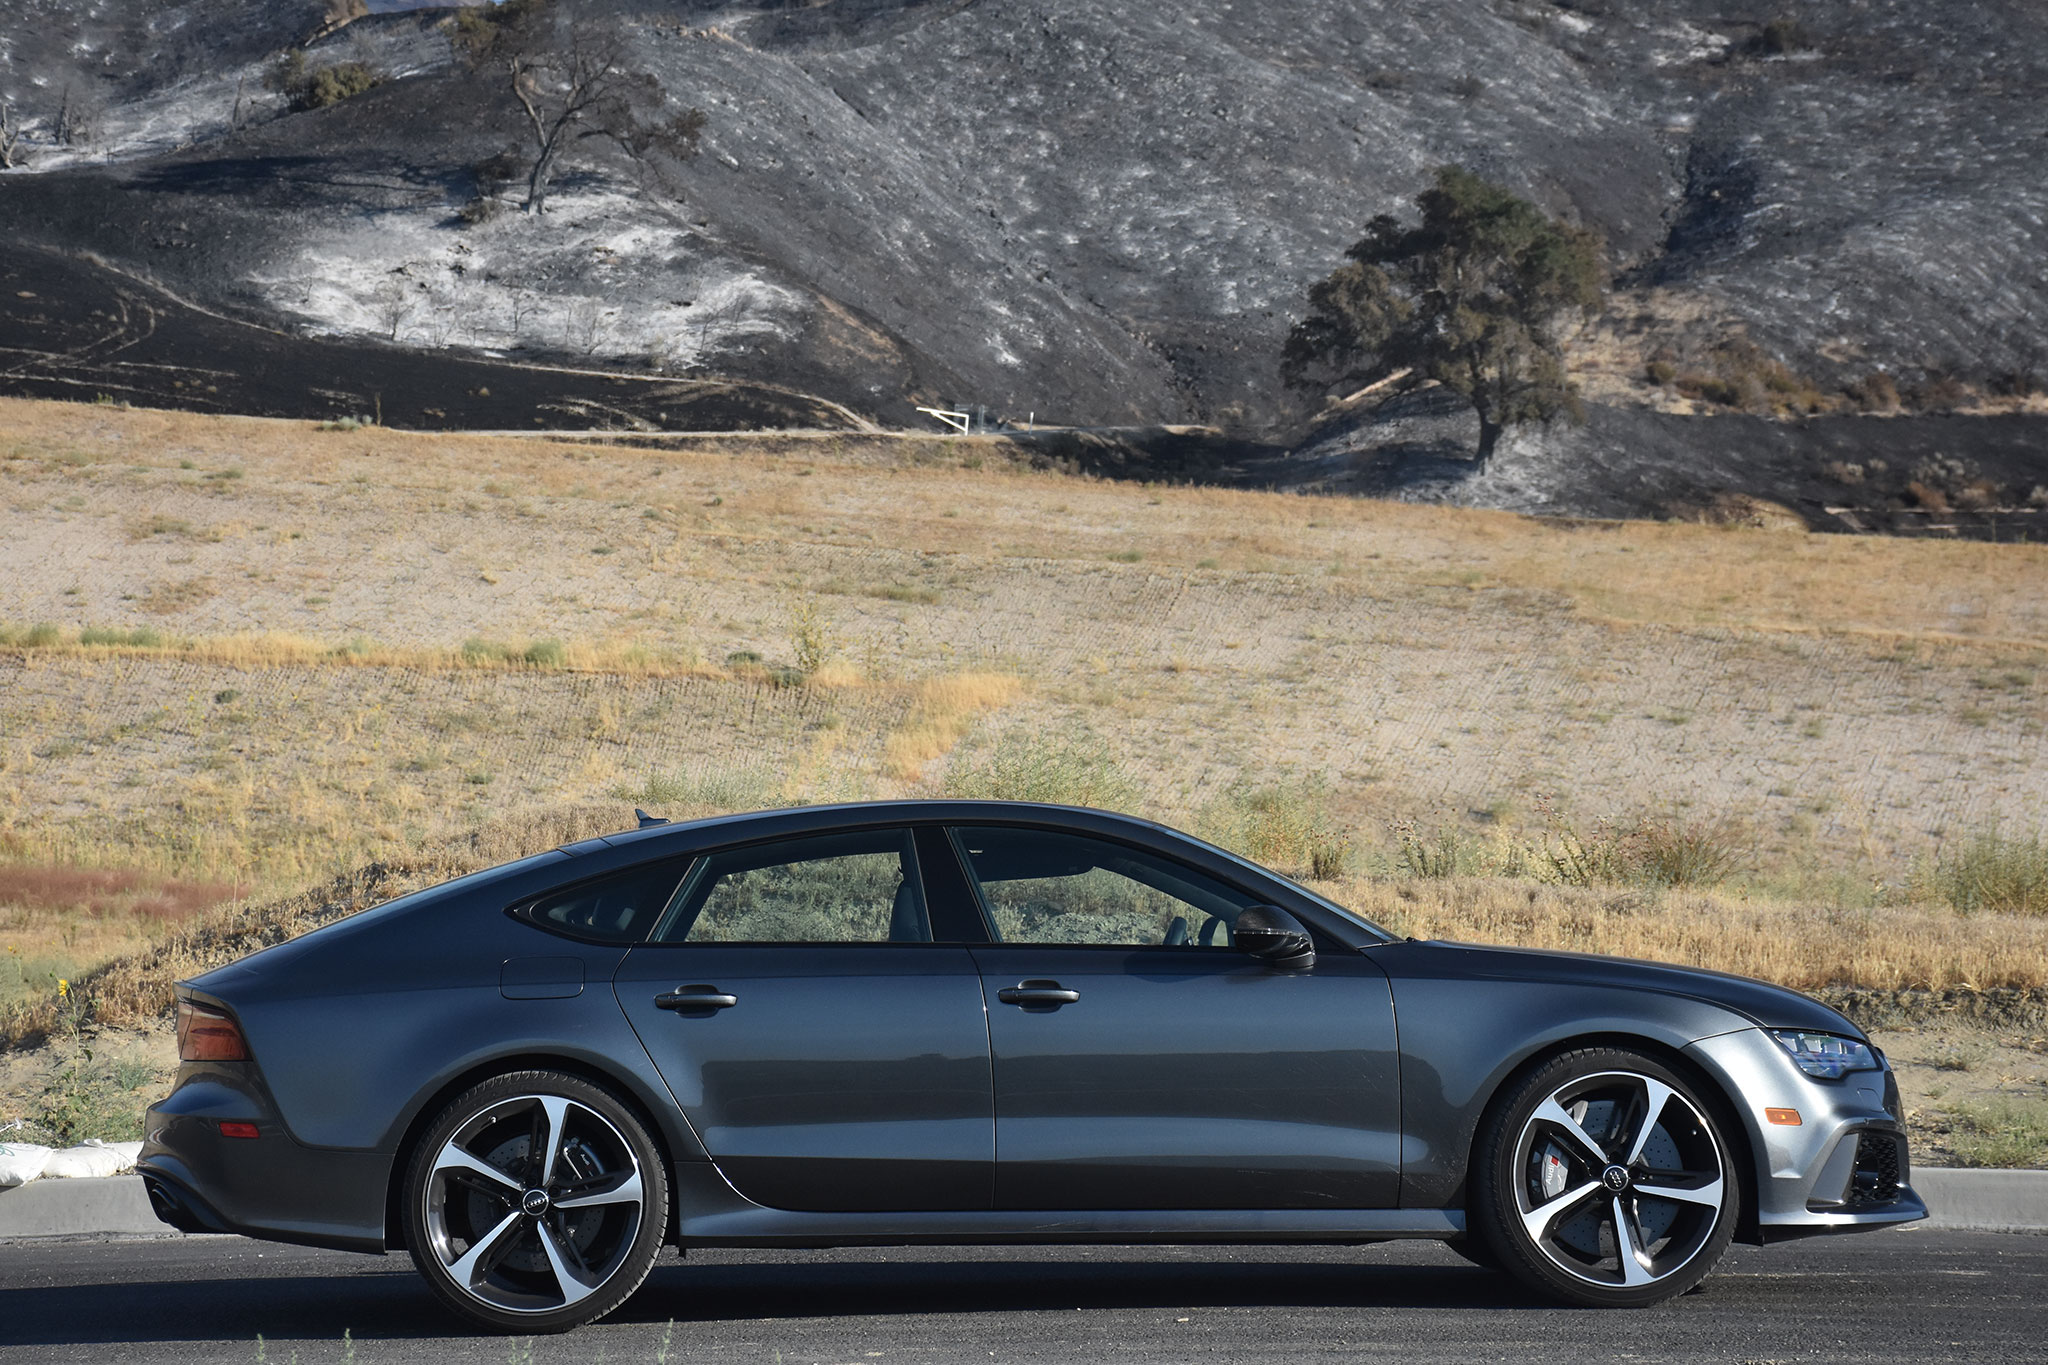 Audi Rs7 0 60 Top Car Reviews 2019 2020 Engine Diagrams A Dangerous Situation In 2016 Performance